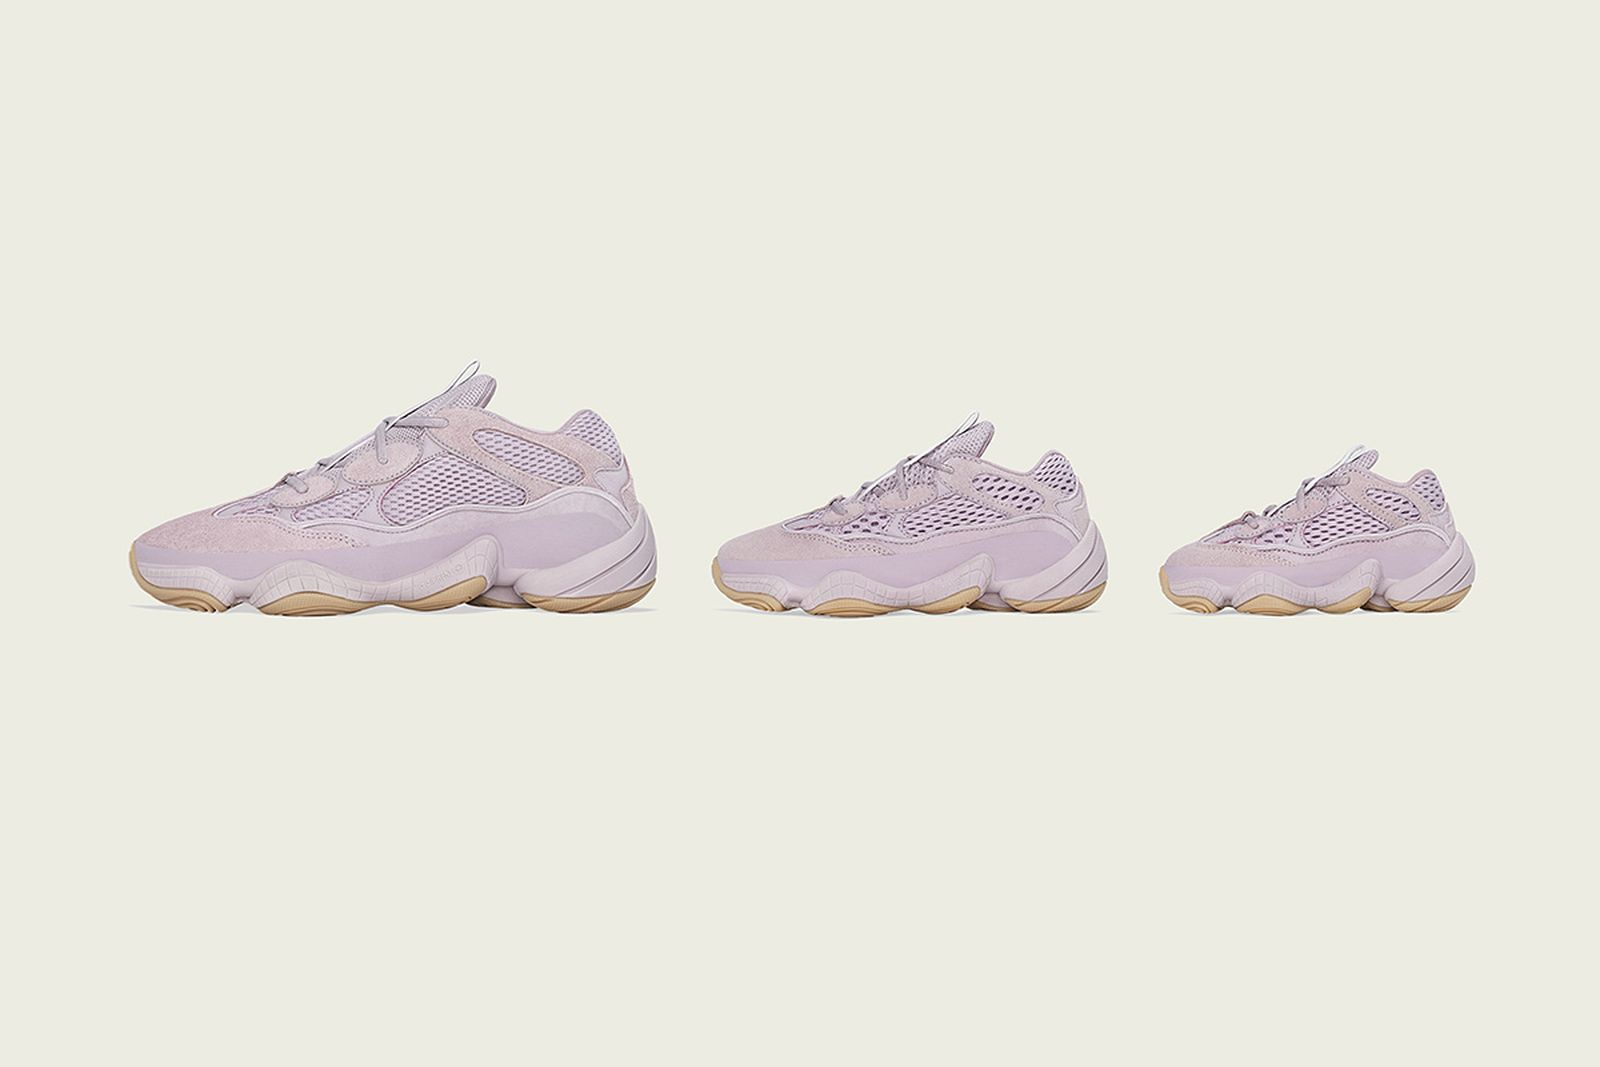 adidas-yeezy-500-soft-vision-release-date-price-official-02